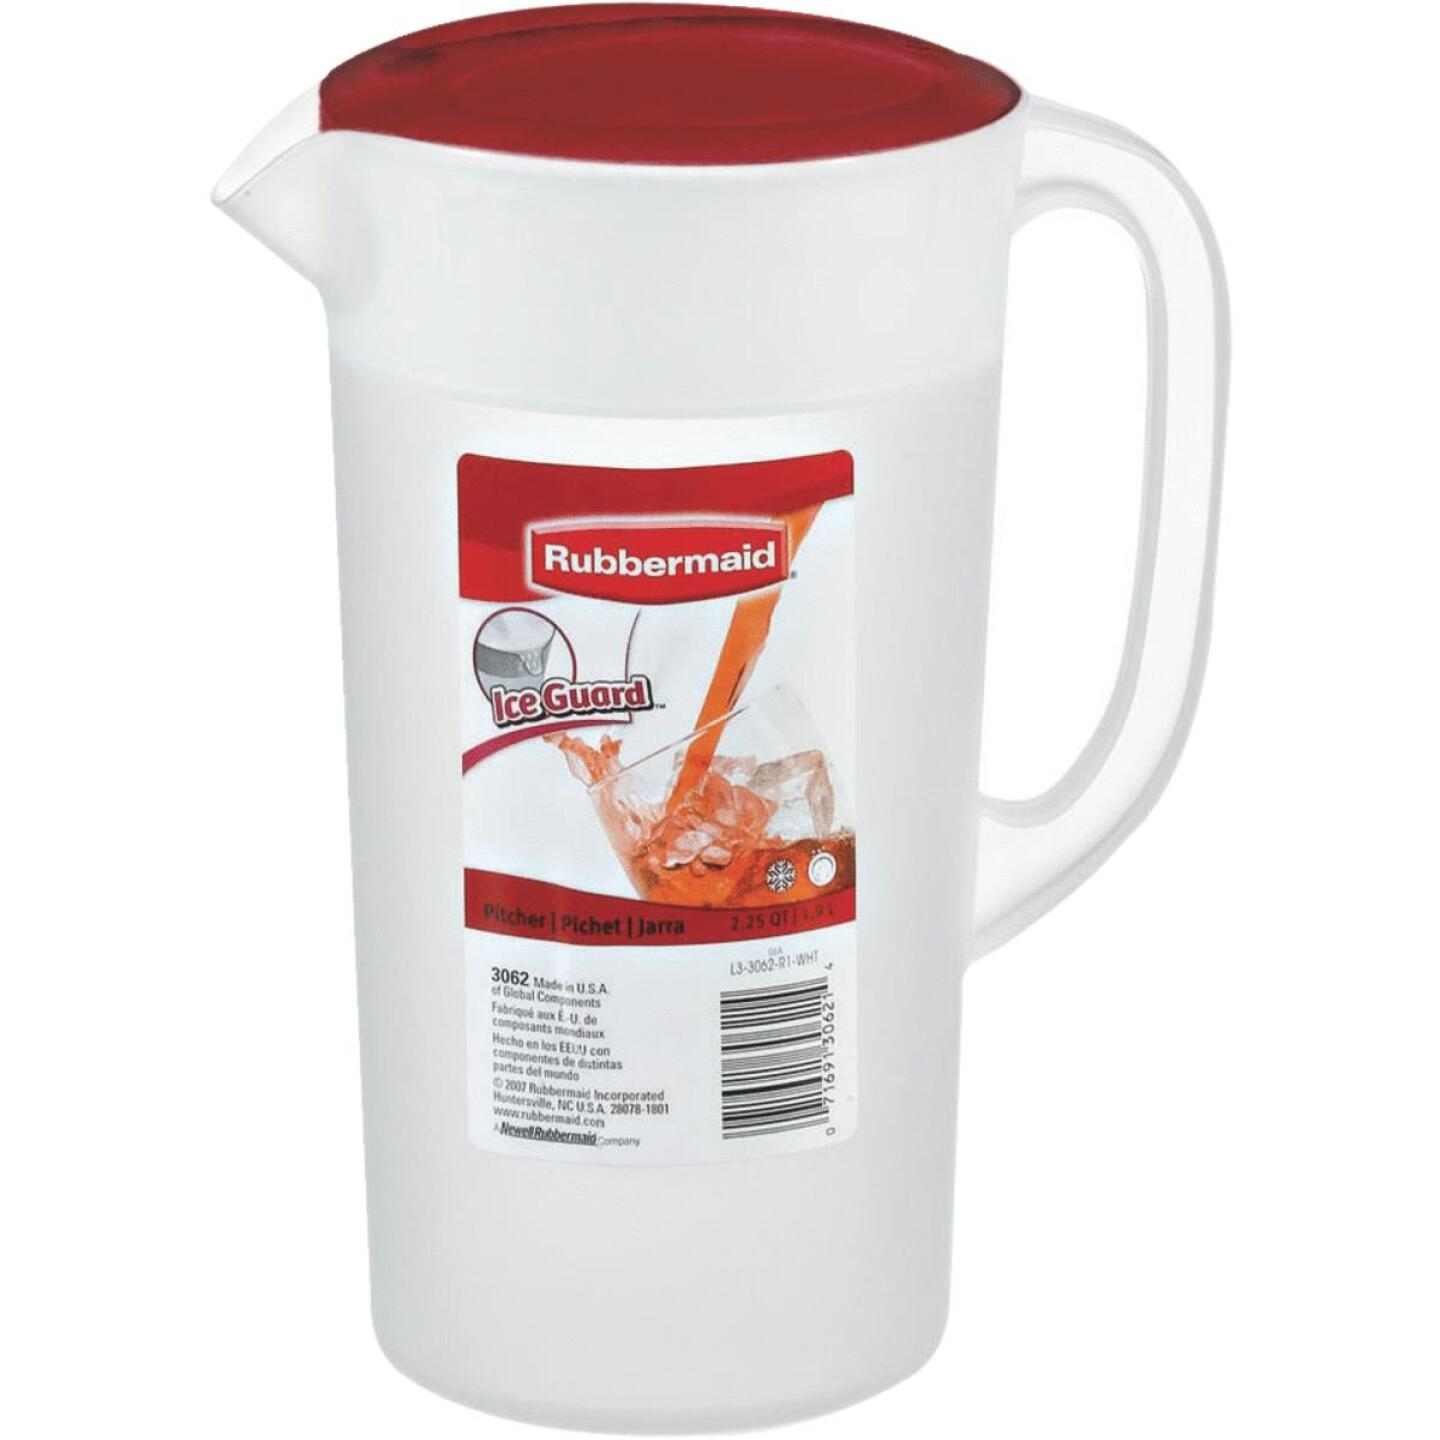 Rubbermaid Frosted Plastic Pitcher with Red Lid, 2.25 Qt. Image 2